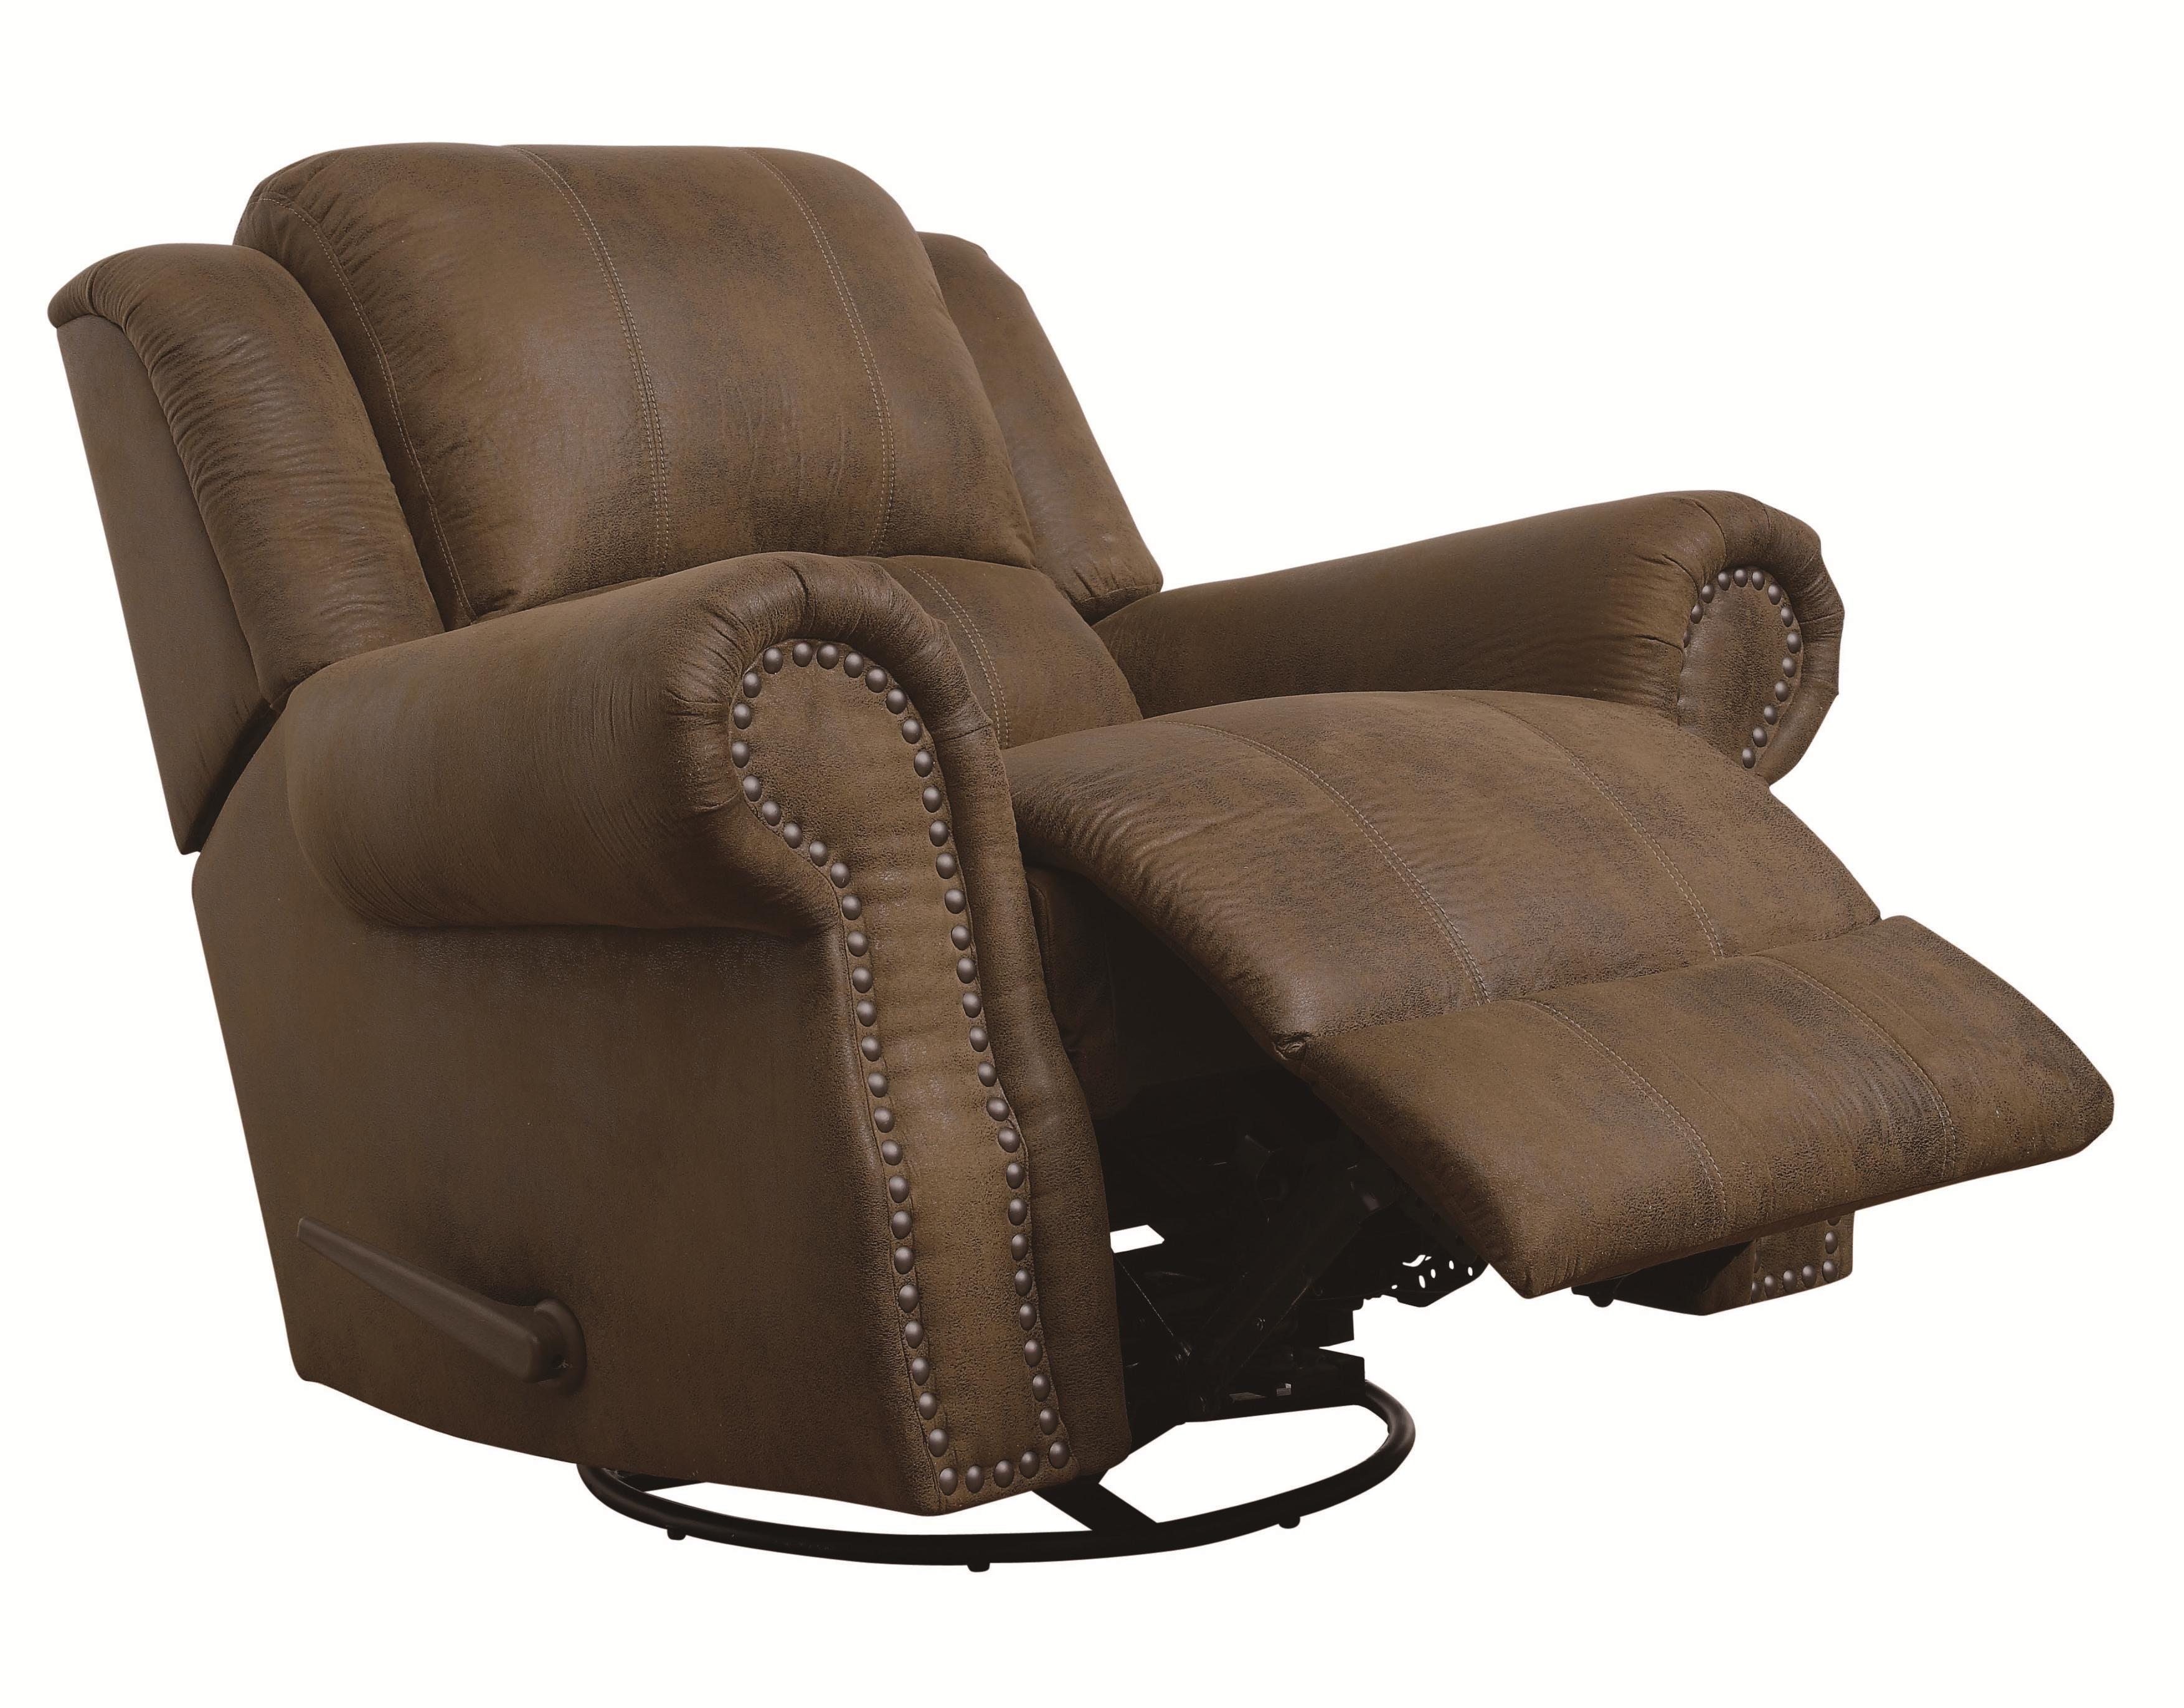 Swivel Rocker Recliner Chair Sir Rawlinson Traditional Swivel Rocker Recliner With Nailhead Studs By Coaster At Dunk Bright Furniture